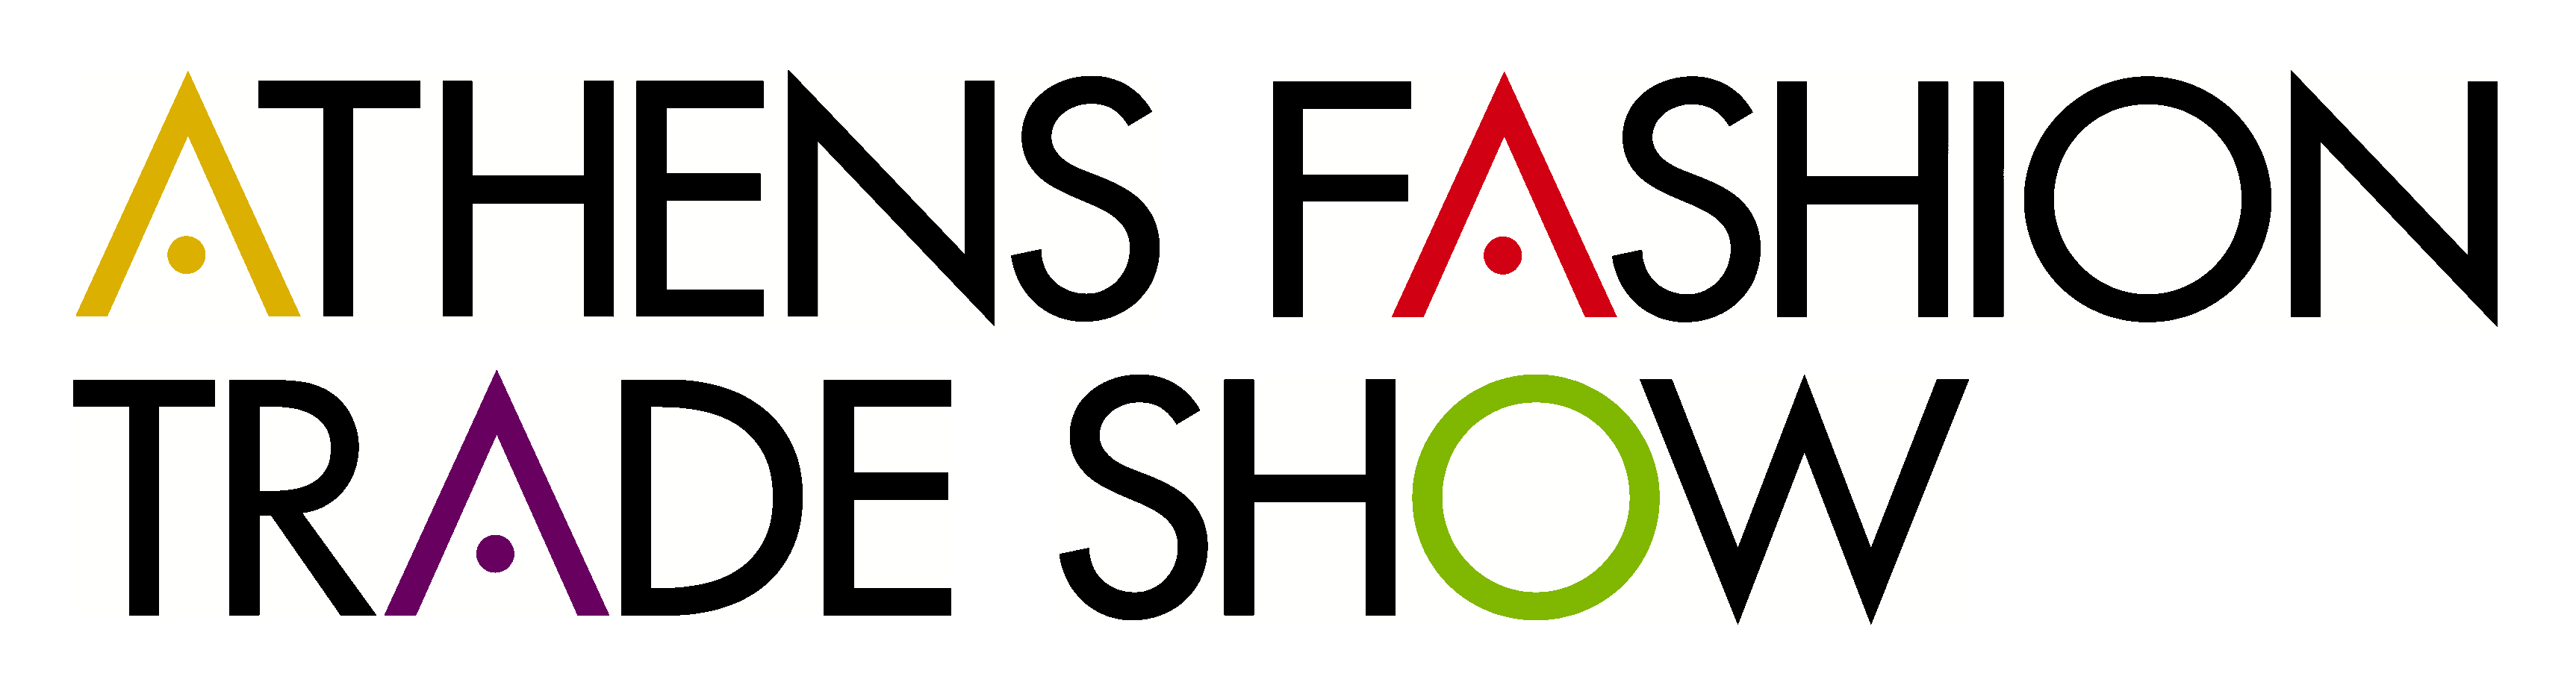 Athens Fashion Trade Show en